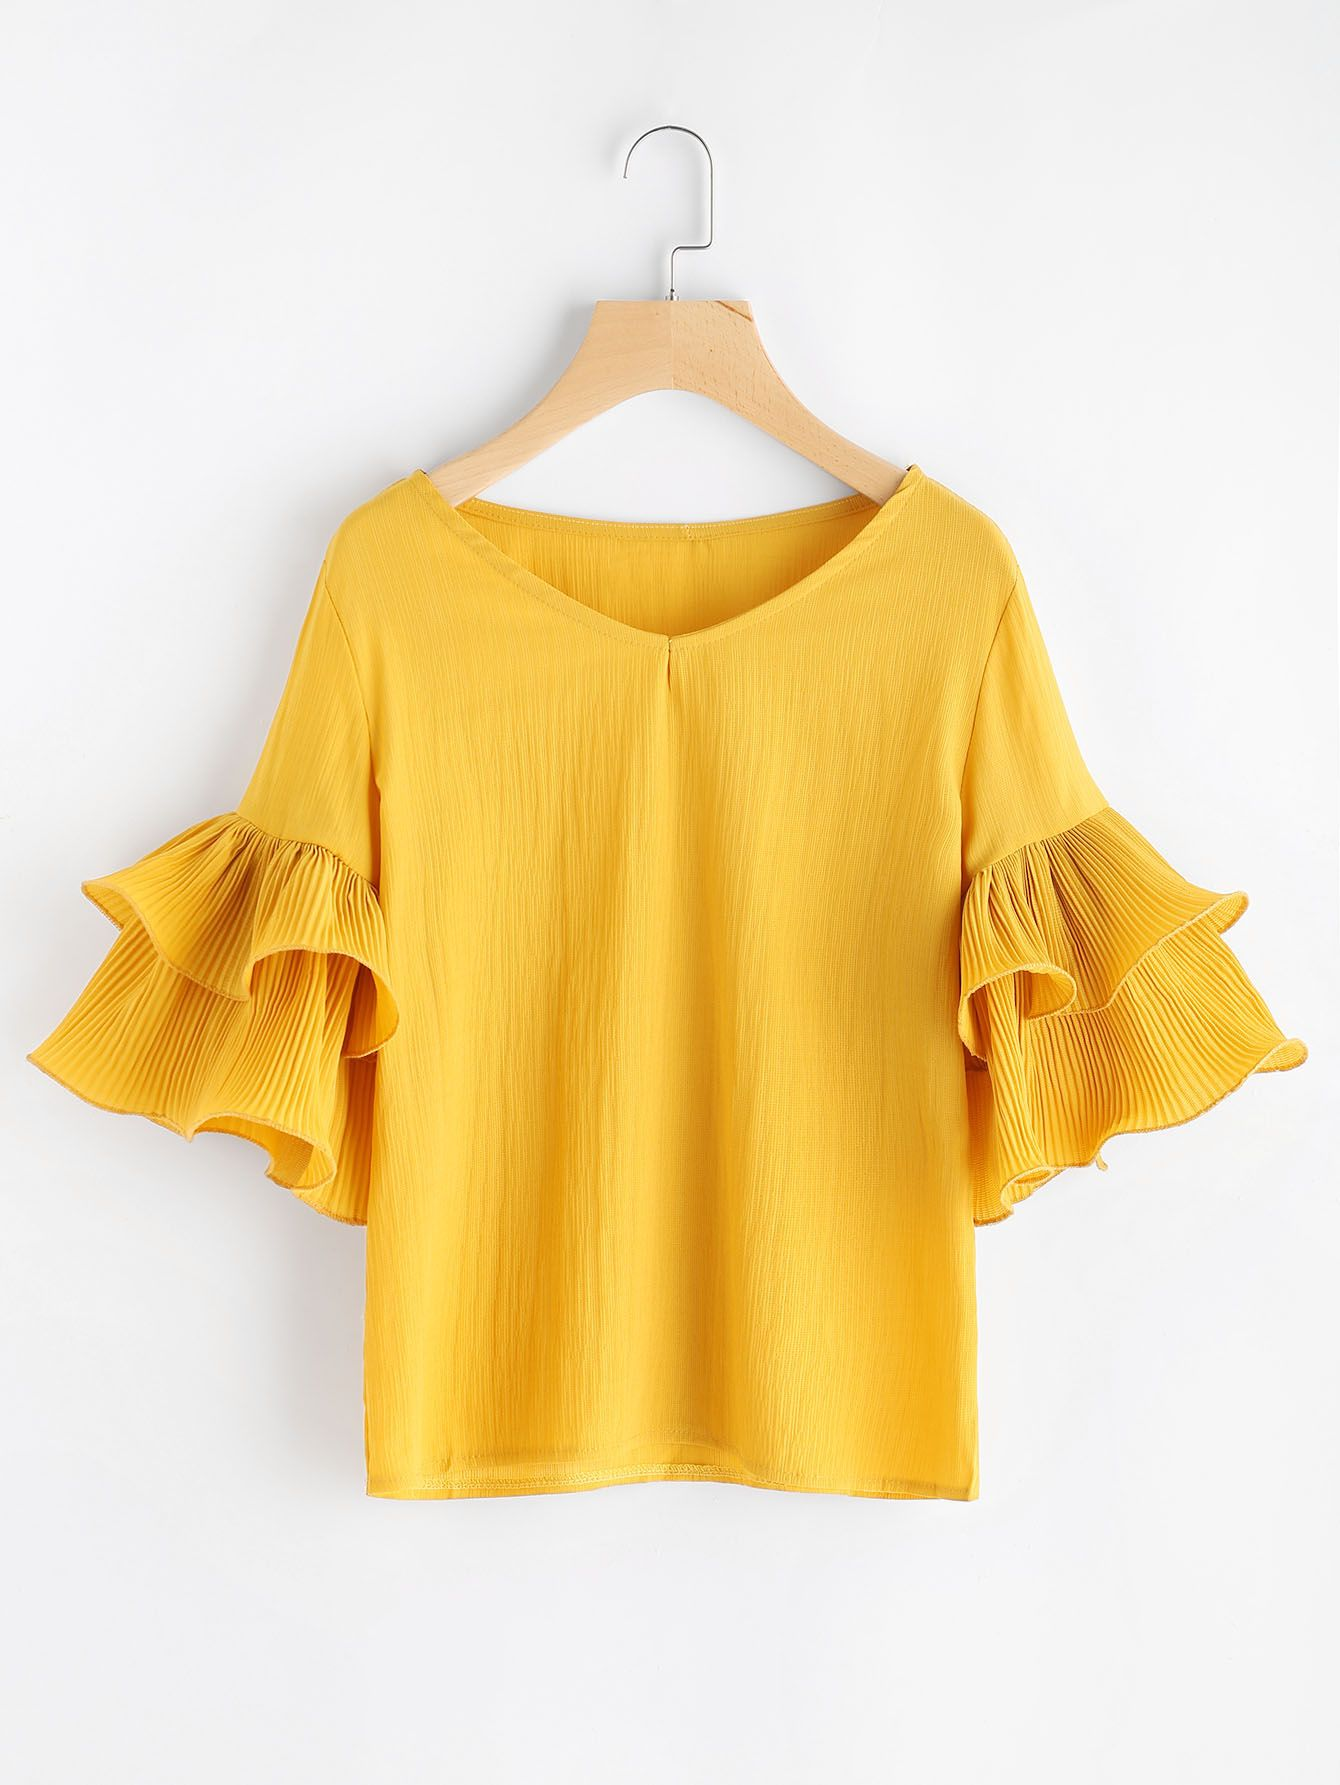 Shop V Neckline Tiered Bell Sleeve Top online SheIn offers V Neckline Tiered Bell Sleeve Top & more to fit your fashionable needs